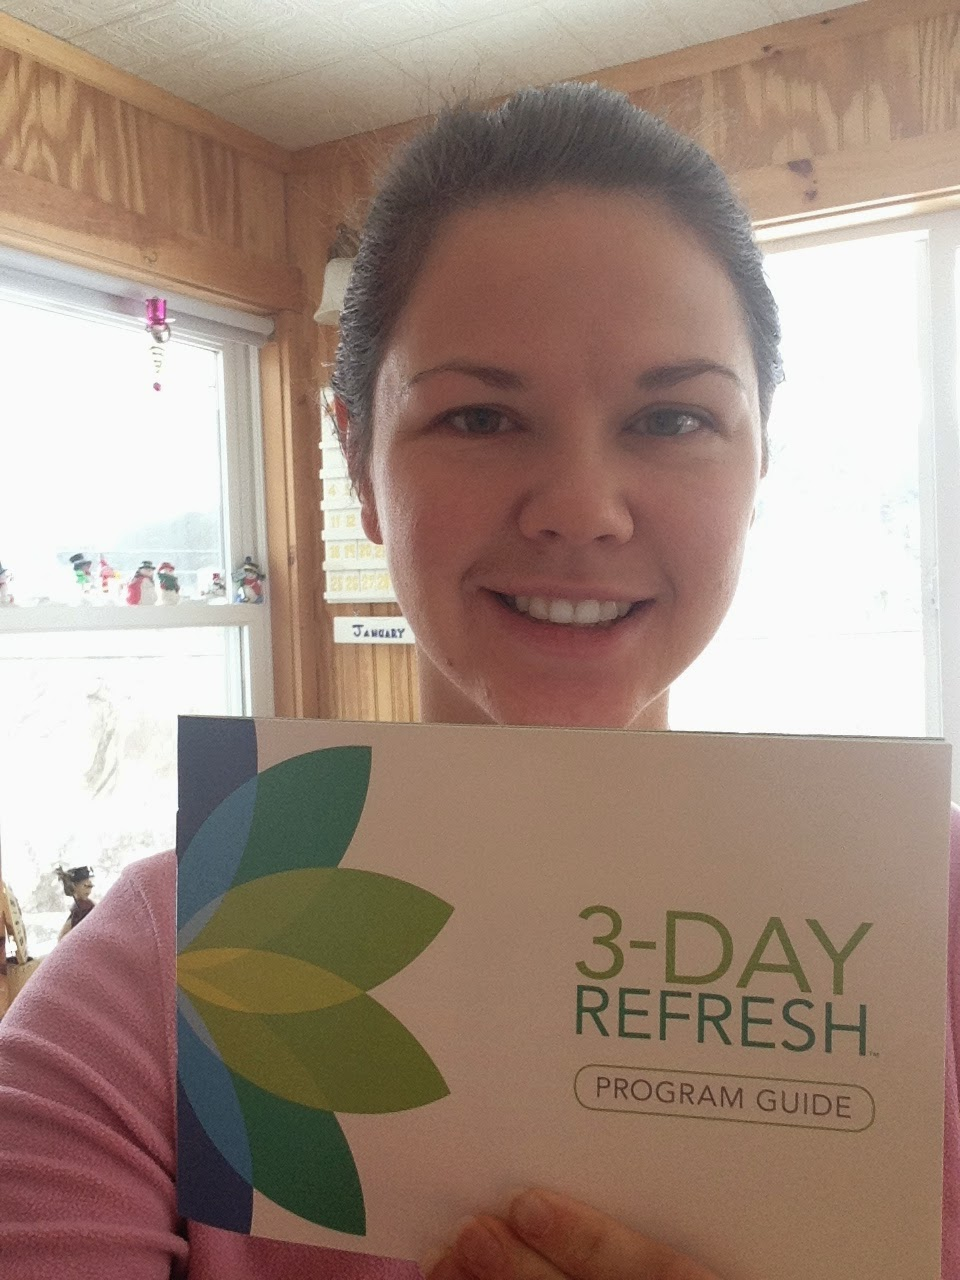 3 Day Refresh www.fatgurlinside.com